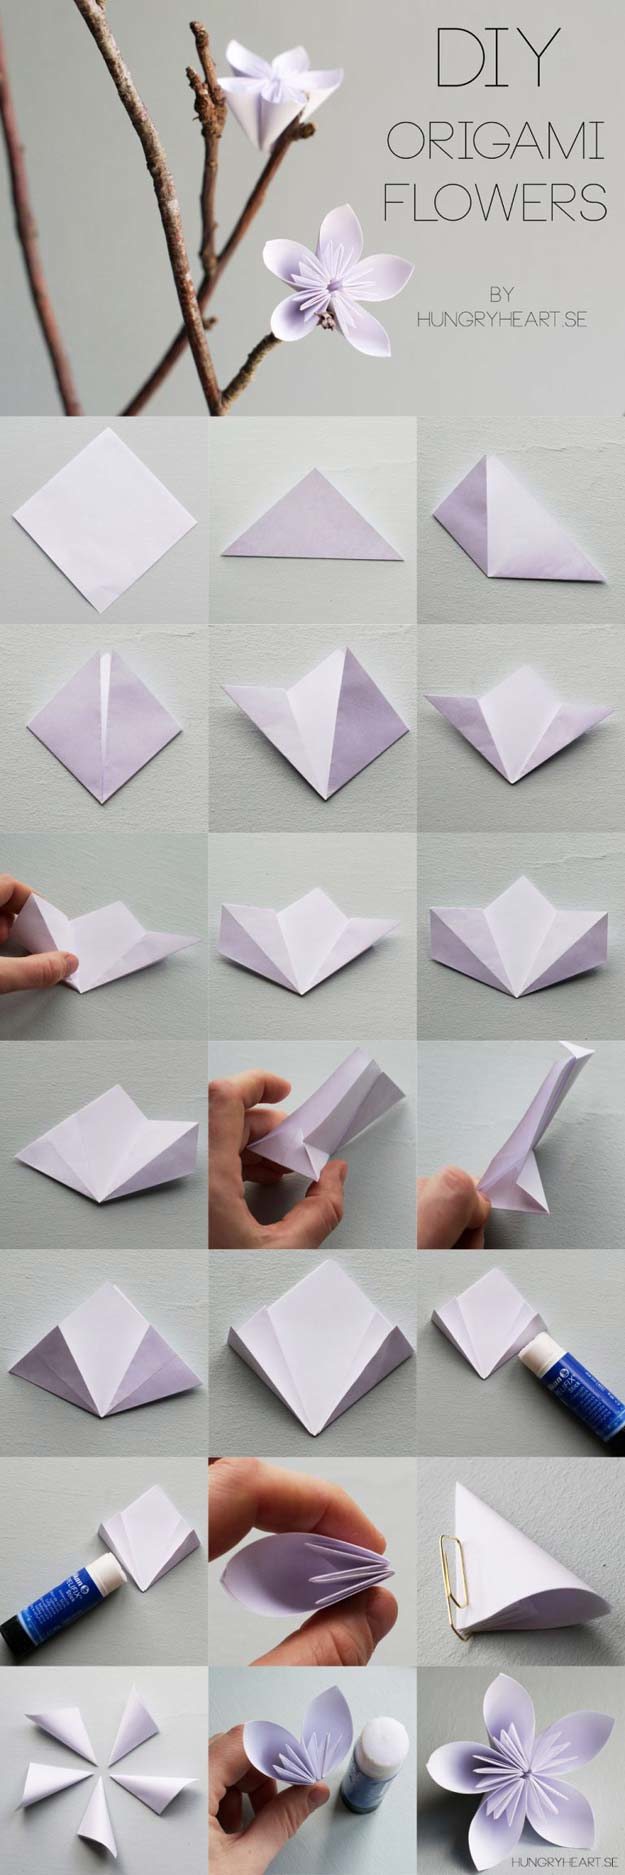 Pin by shameen anwar on origami pinterest origami and craft ideas about diy life hacks crafts 2017 2018 best origami tutorials flower origami easy diy jeuxipadfo Choice Image